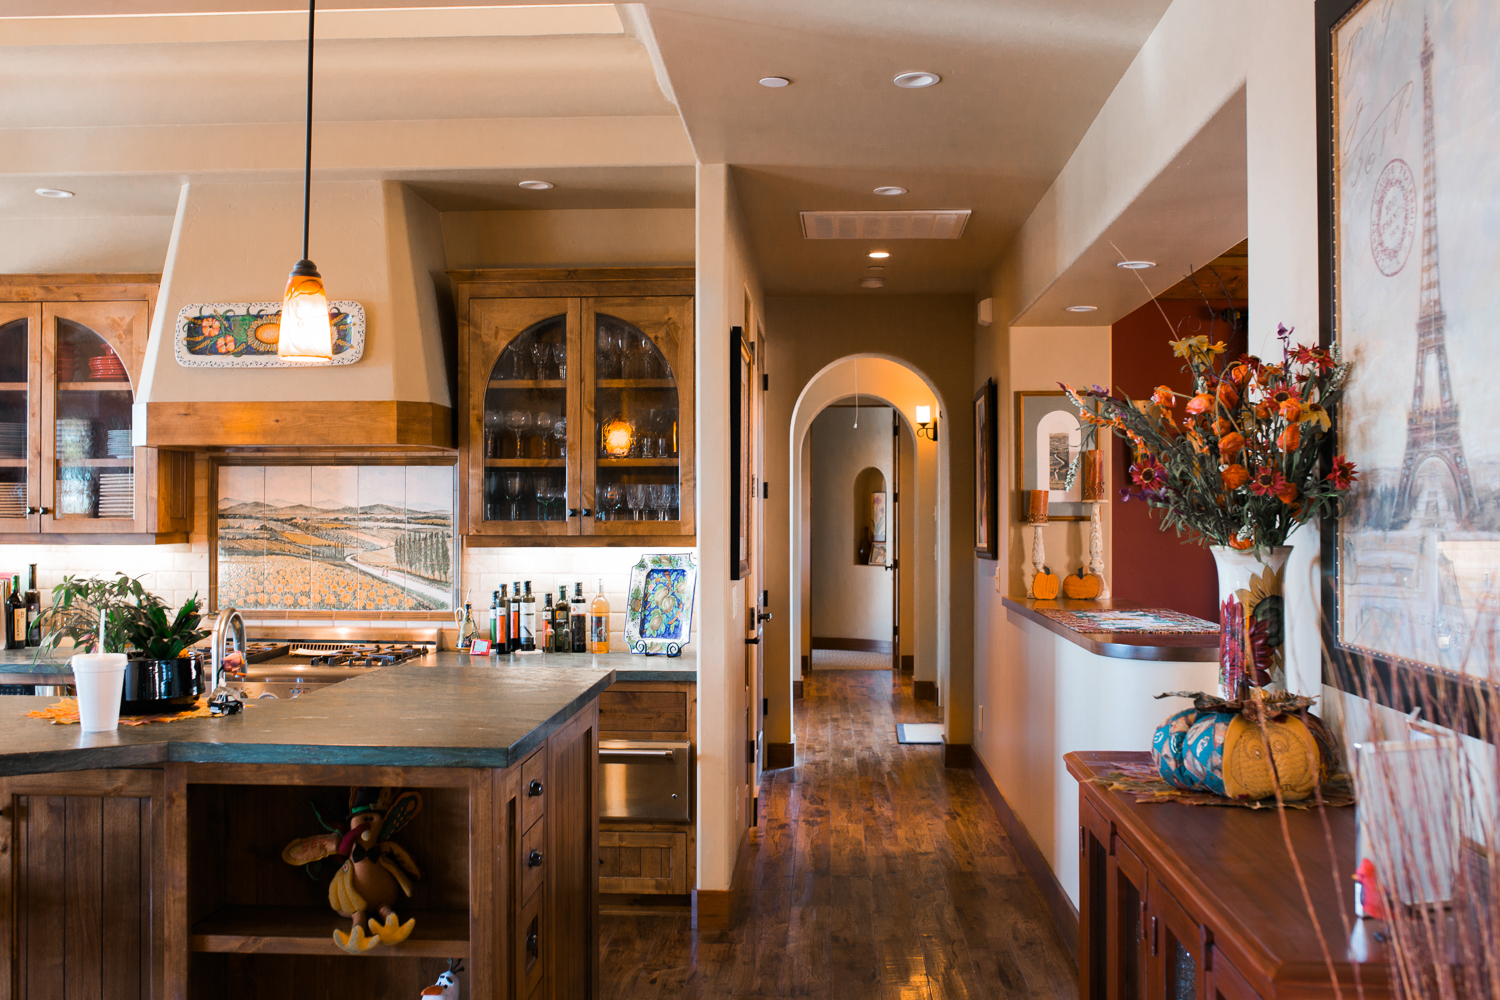 airehart construction-chico construction company-chico home builders-7.jpg